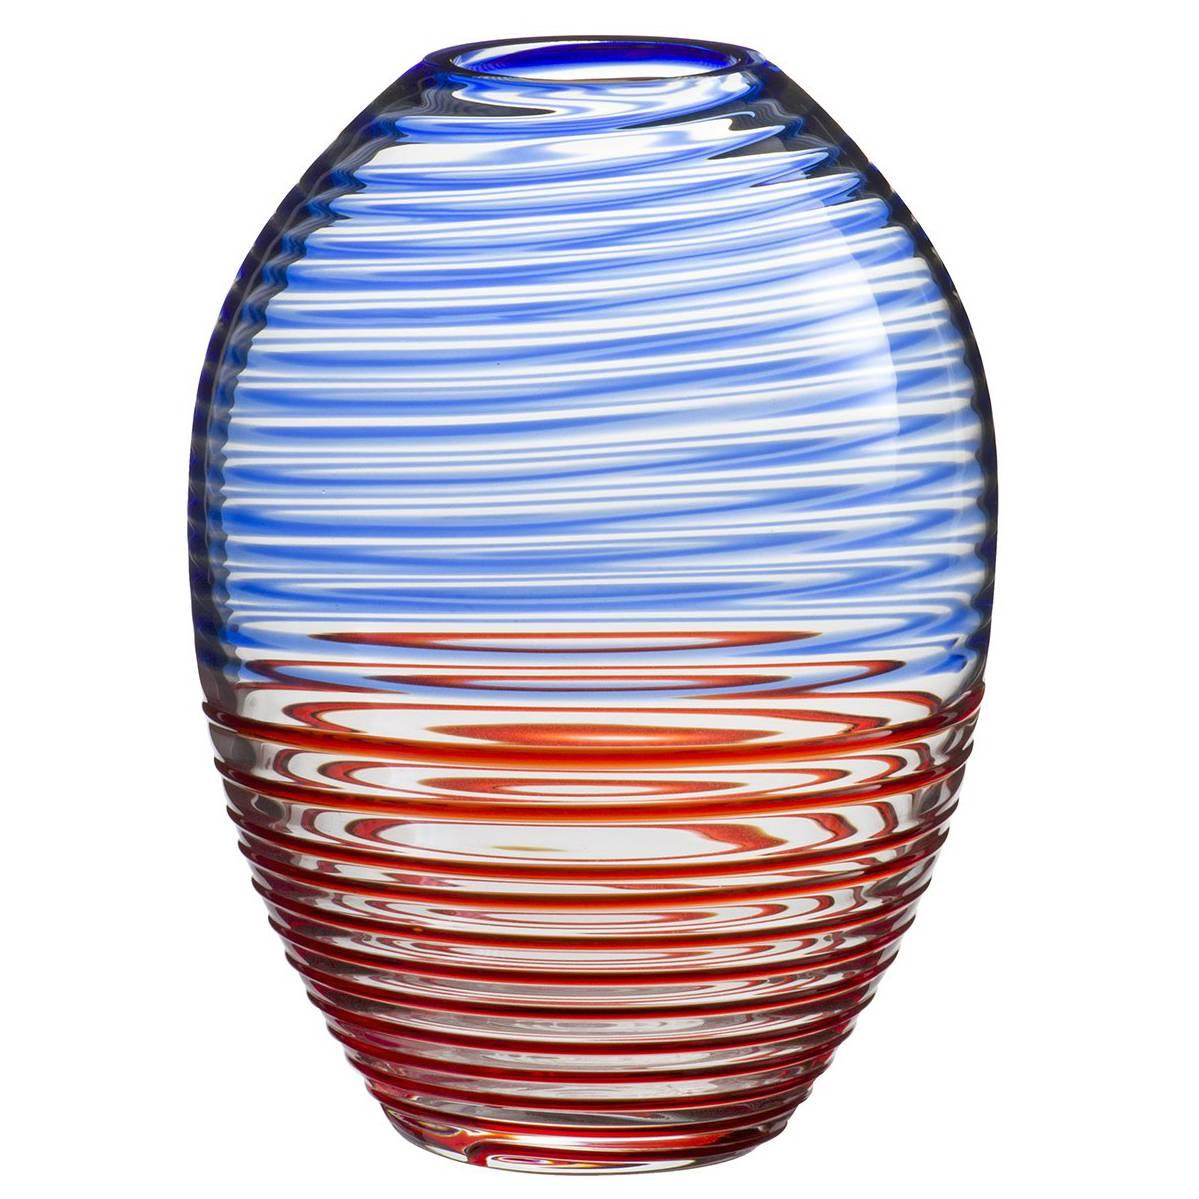 Orion Carlo Moretti Murano Contemporary Mouth Blown Murano Glass Vase